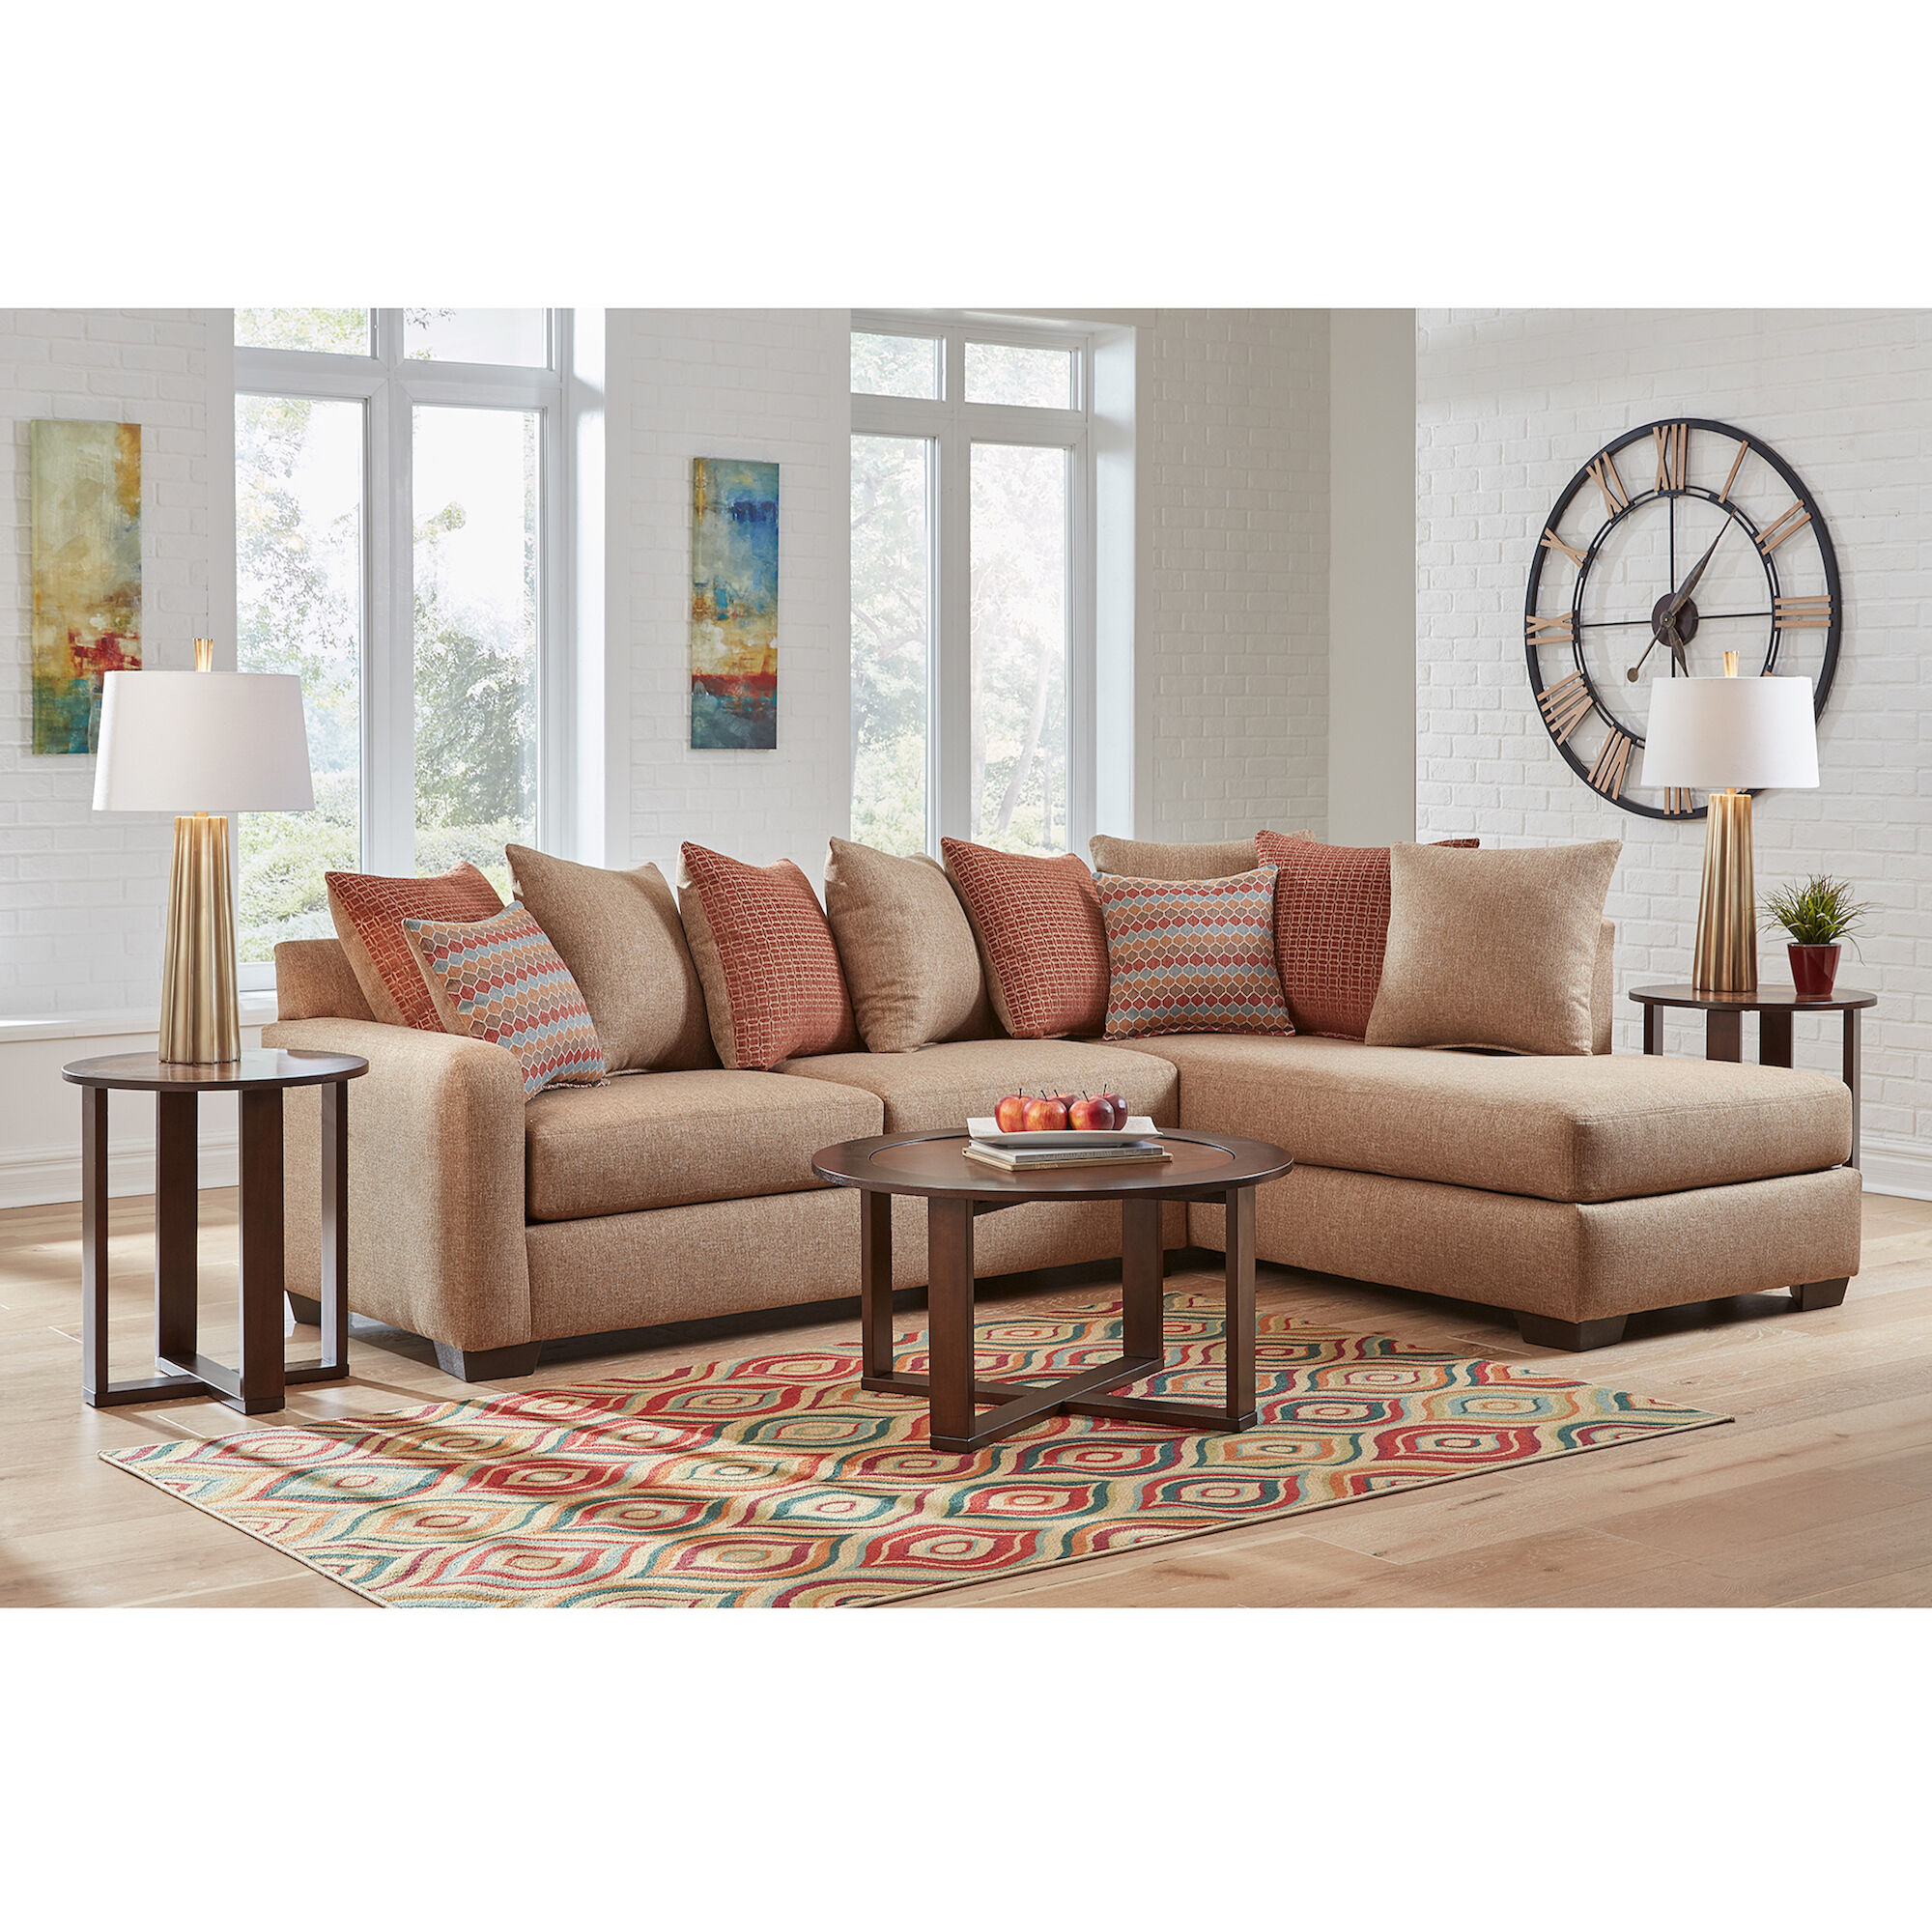 Woodhaven Industries Living Room Sets 7Piece Casablanca